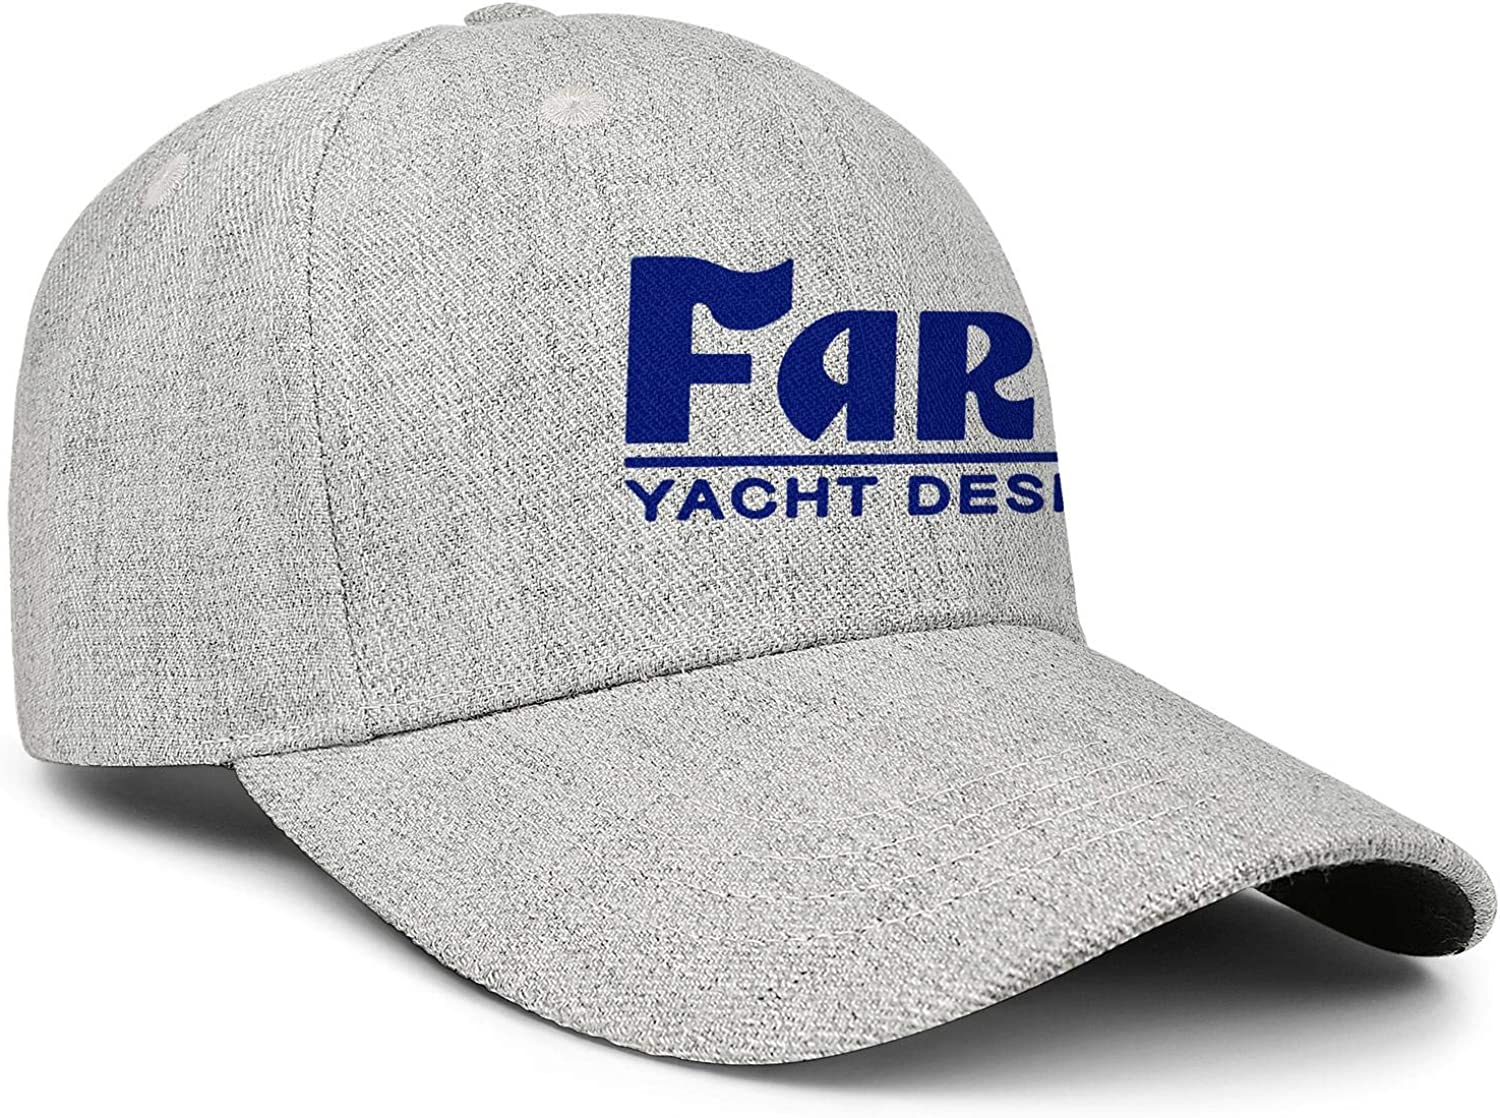 LiyeRRy Farr-Yacht-Design-Logo Adjustable Baseball Cap Wool Strapback Dad Hat Unisex Unstructured Trucker Hat